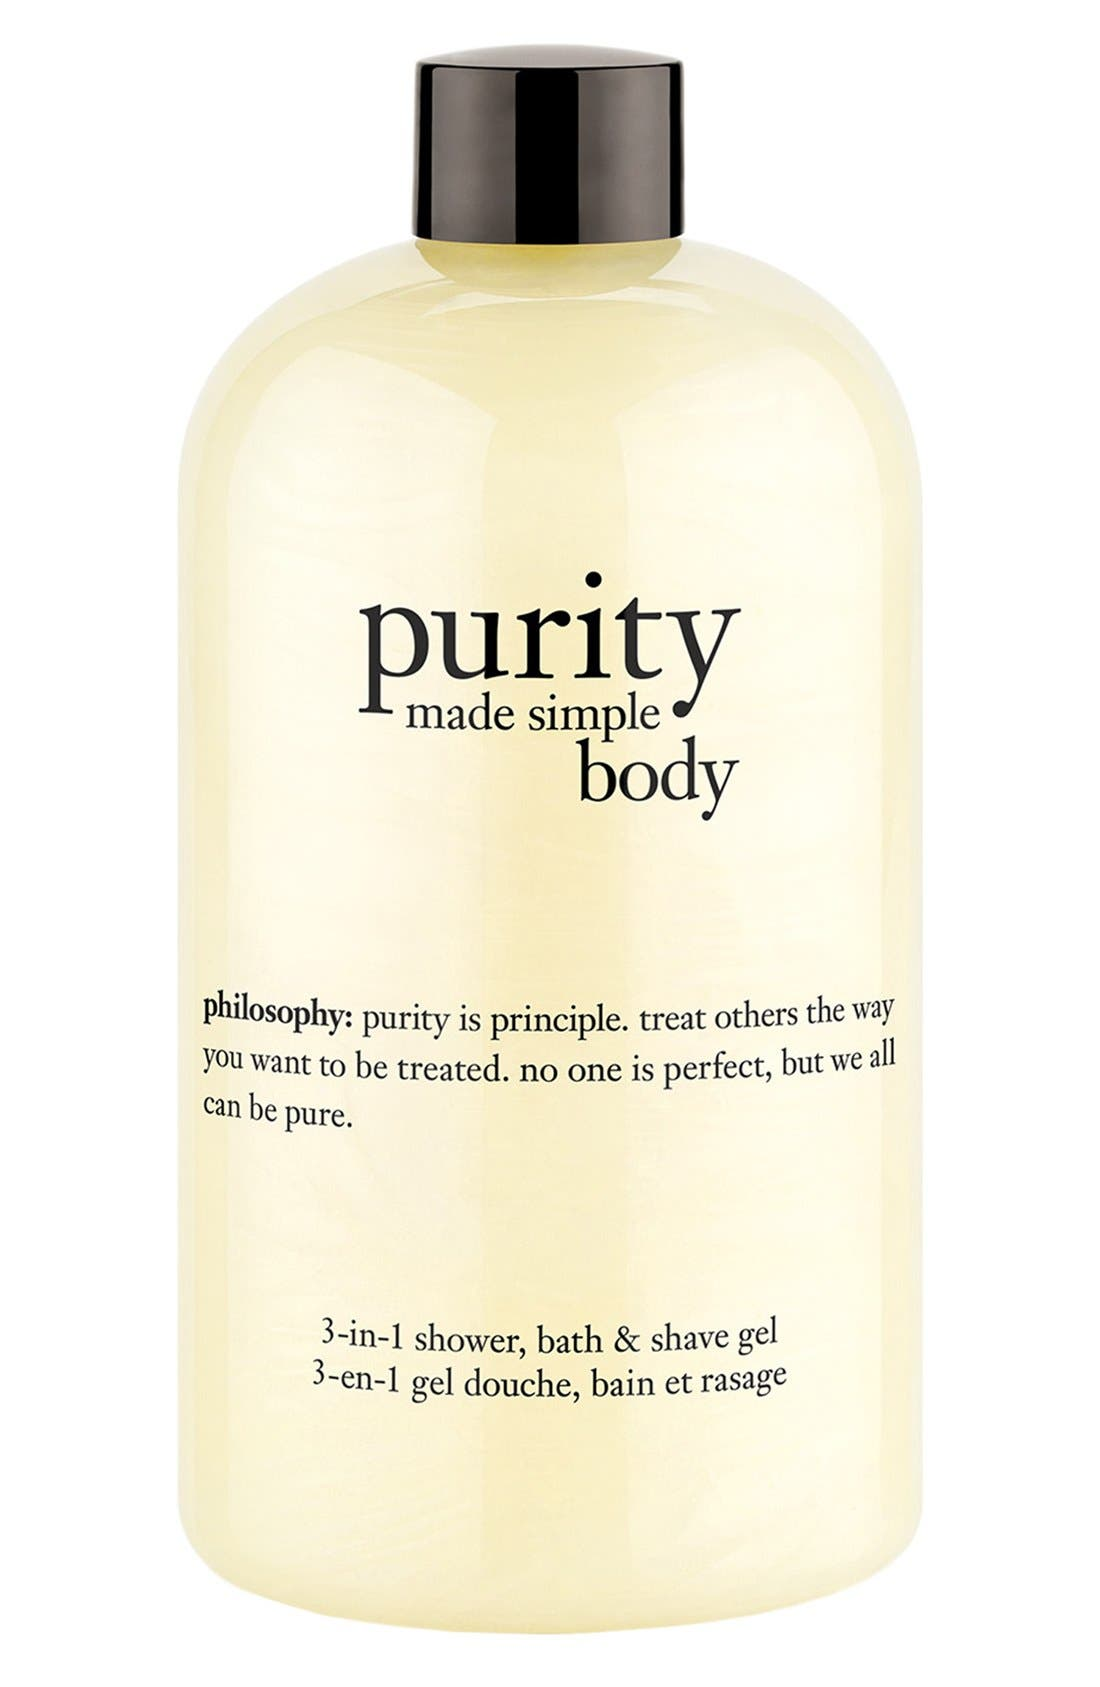 philosophy 'purity made simple body' 3-in-1 shower, bath & shave gel